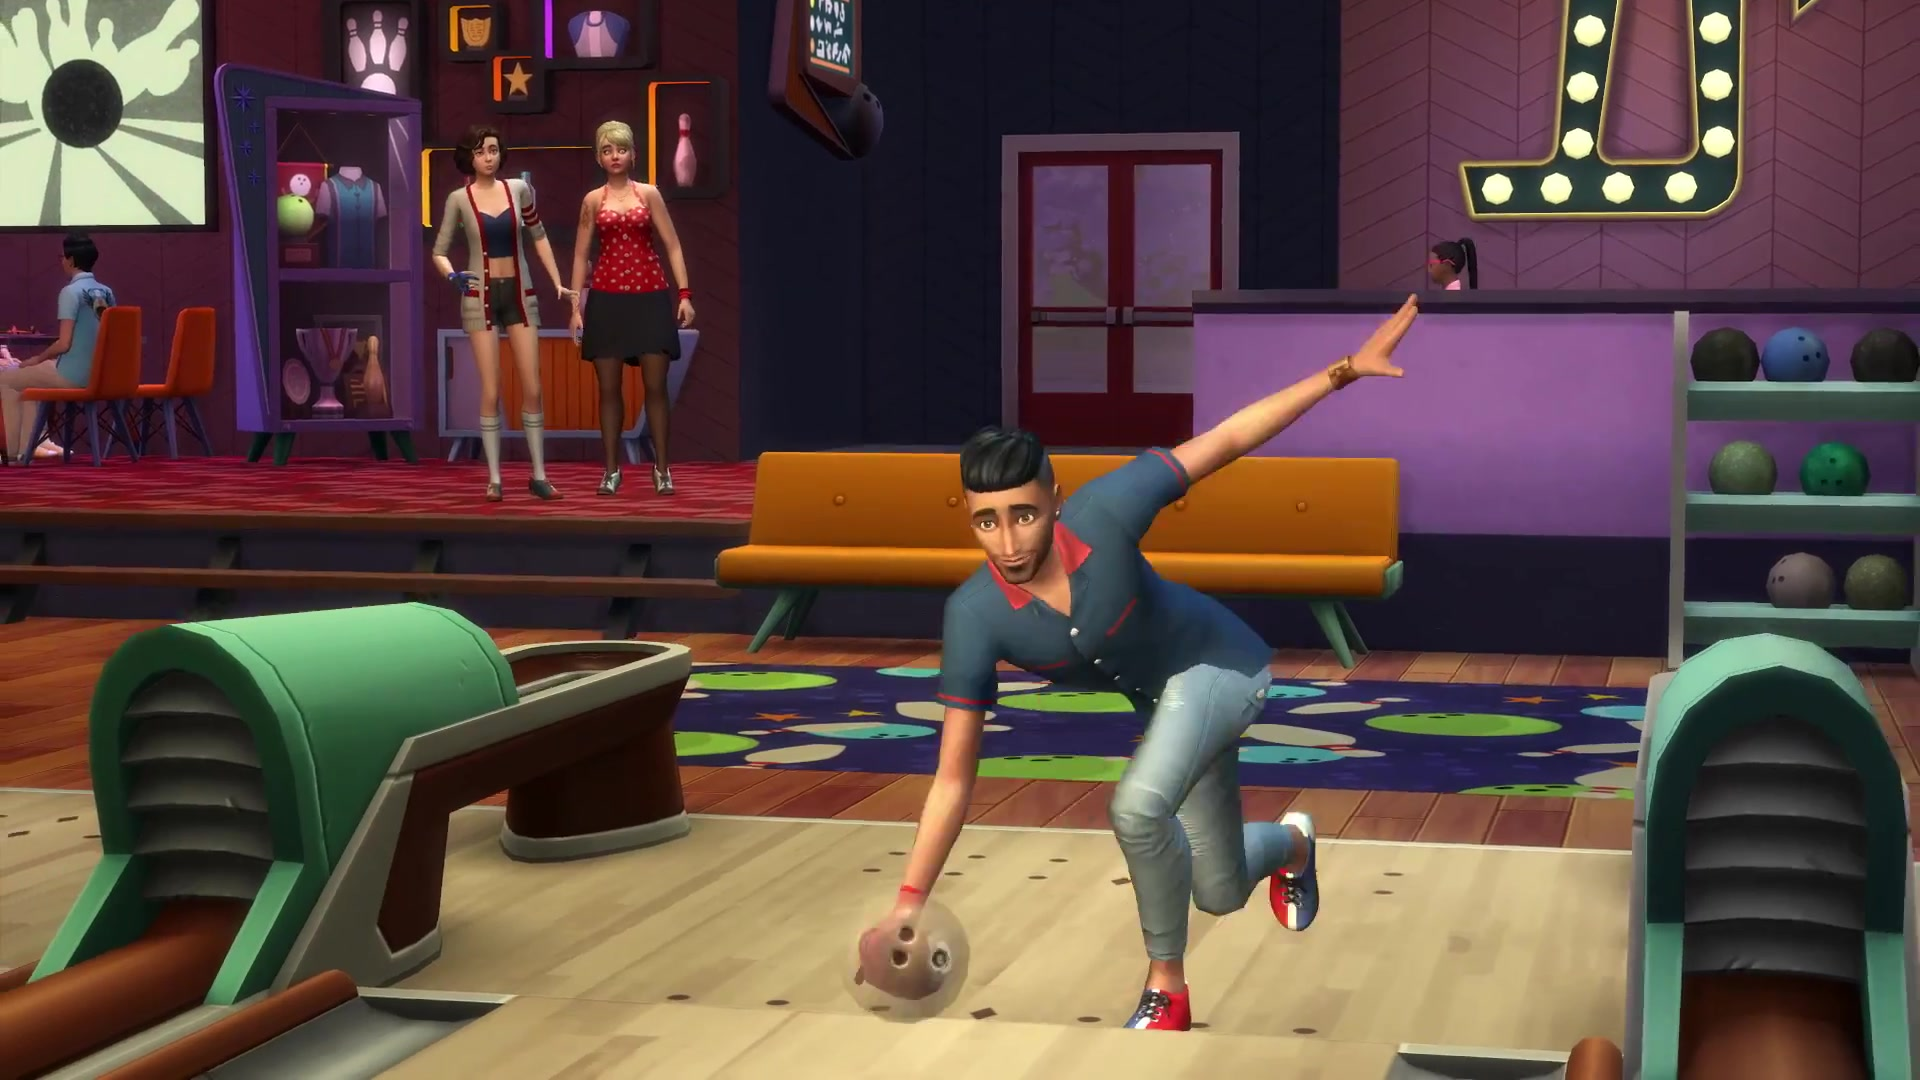 The-Sims-4-Bowling-Night-Stuff-Official-Trailer-0746.jpg (1920×1080)